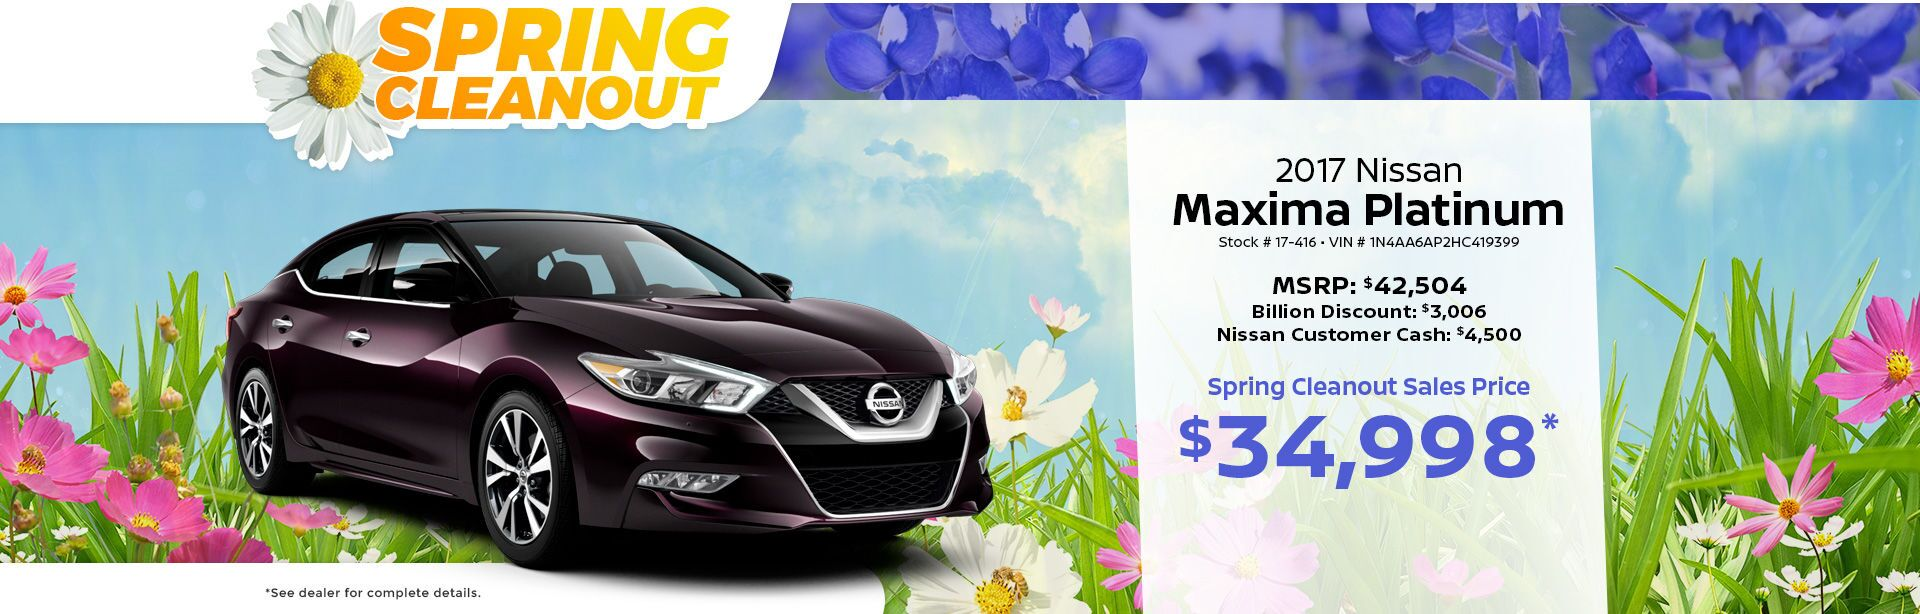 Spring Cleaning Maxima